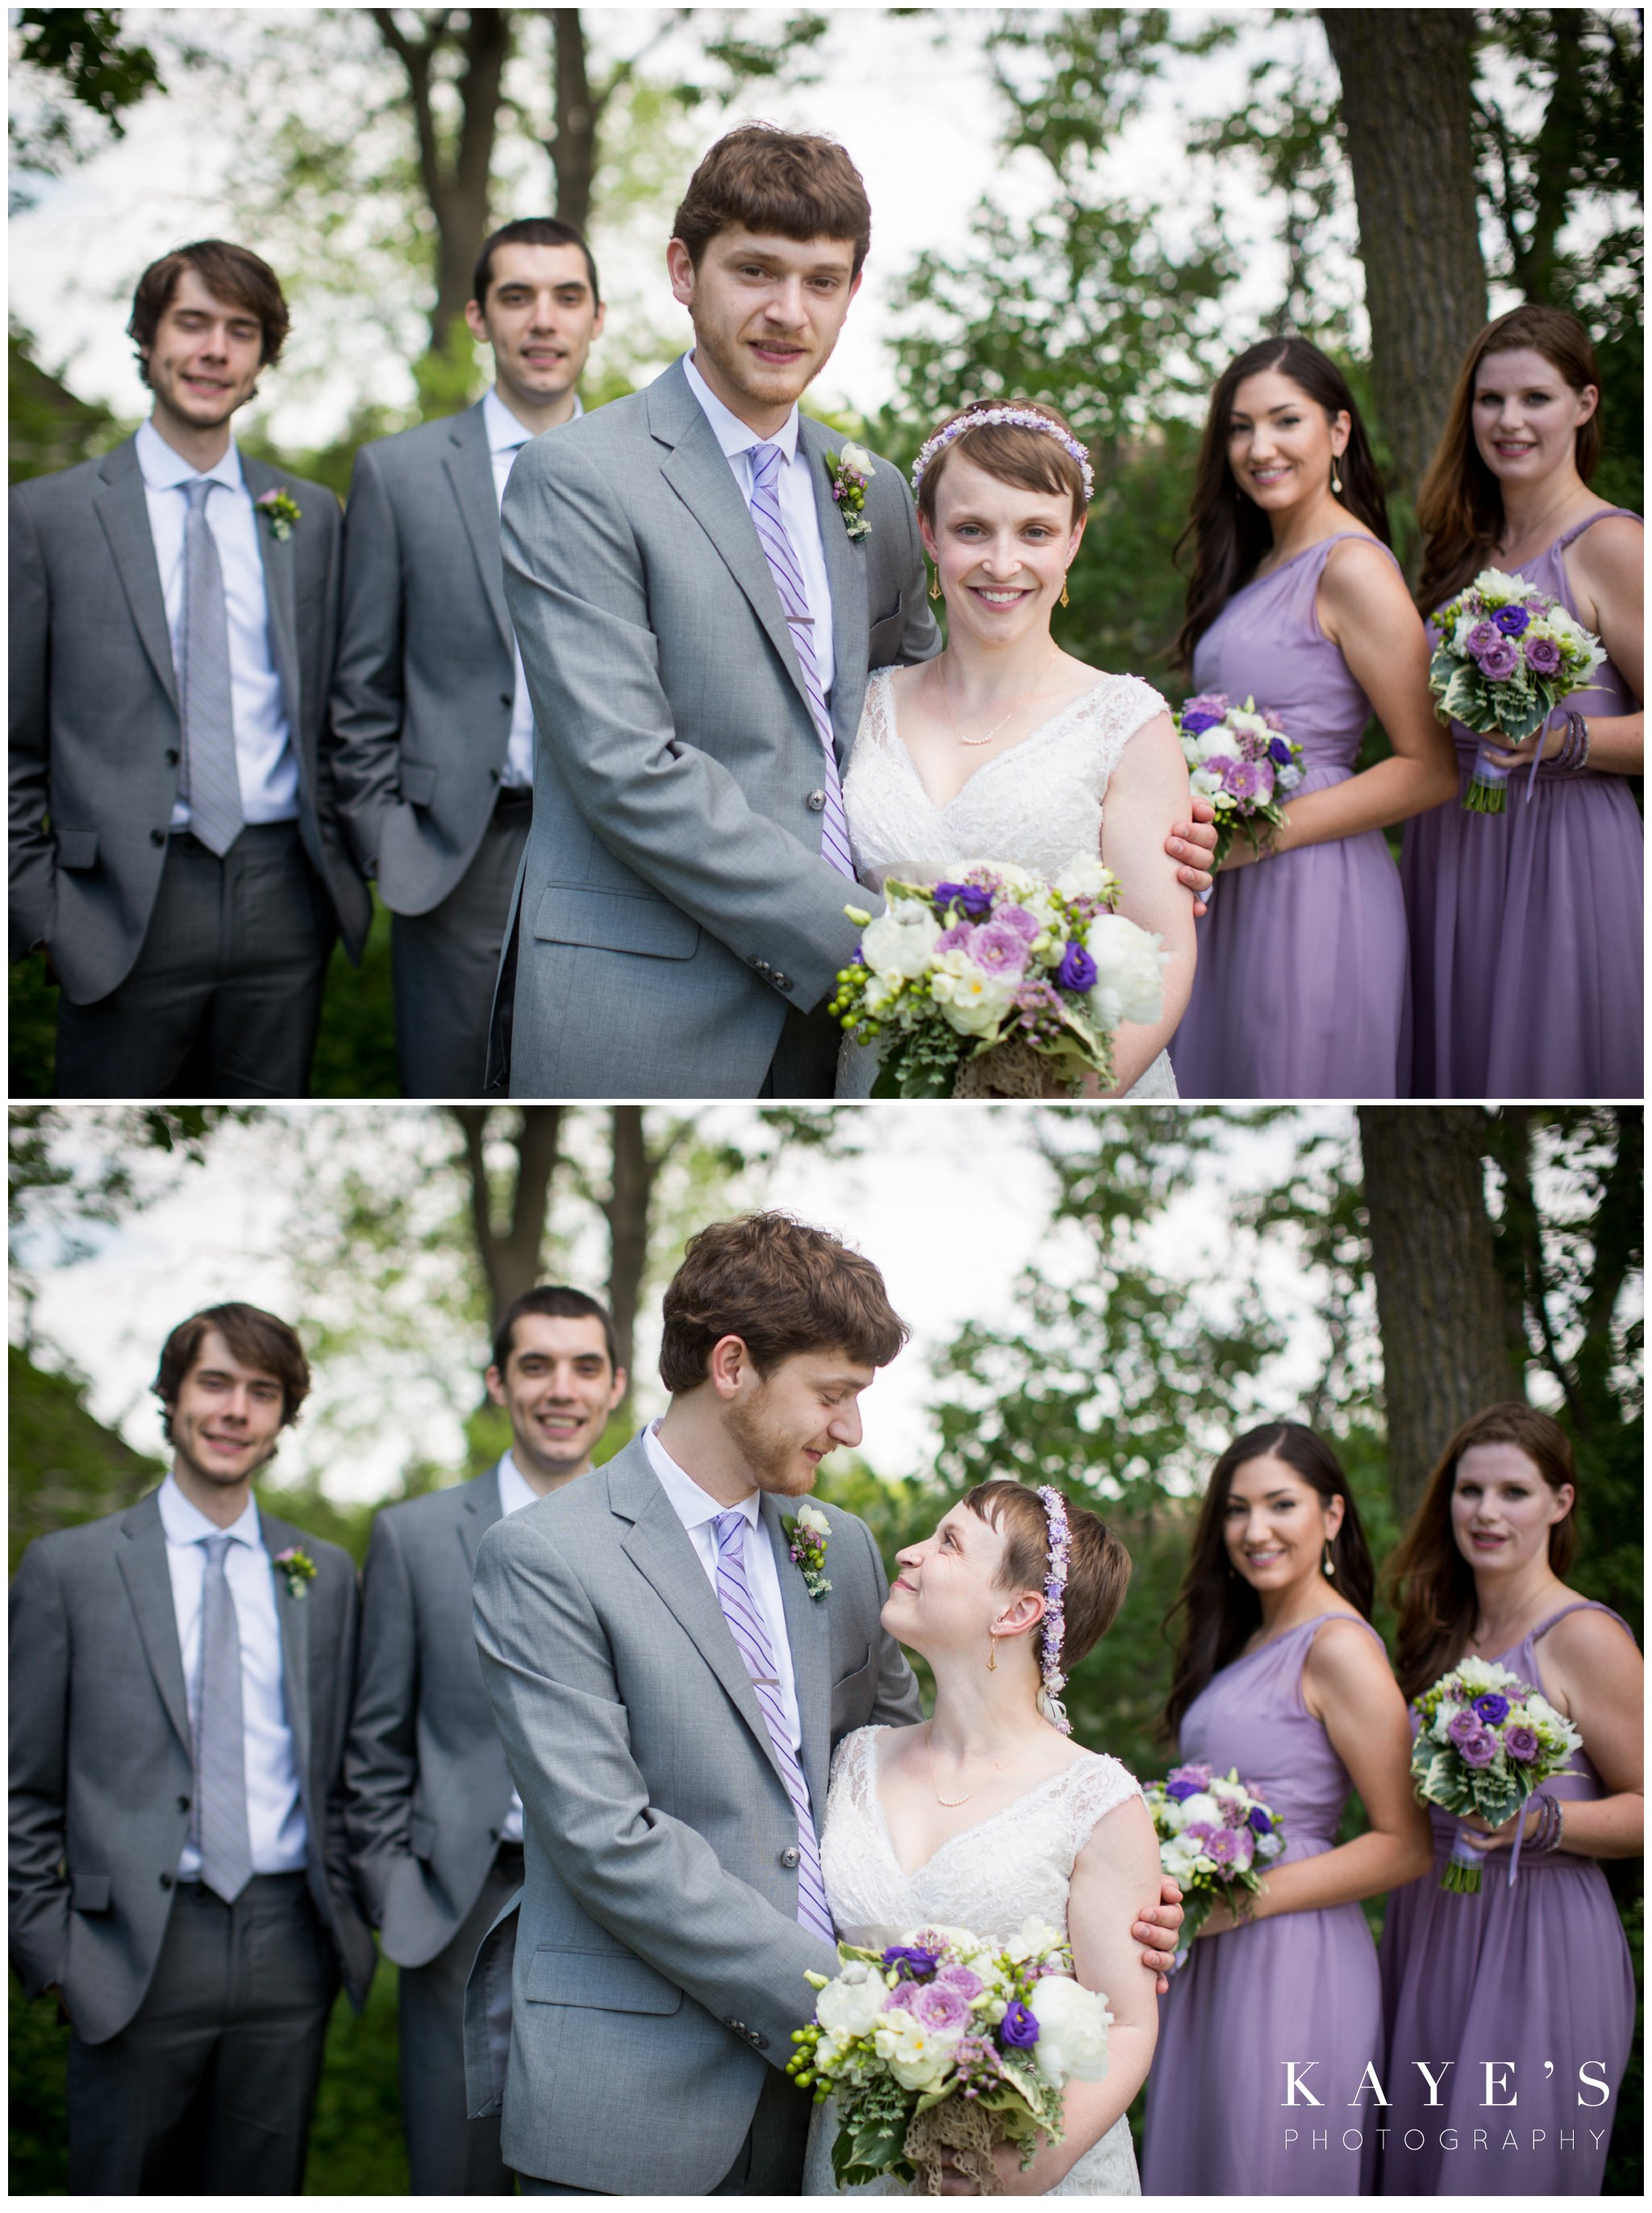 cobblestone farms ann arbor michigan wedding photographer, ann arbor michigan wedding photography, cobblestone farms wedding photos, ann arbor michigan wedding photographer ideas, bride and groom looking at each other, bride and groom with wedding party, purple, grey